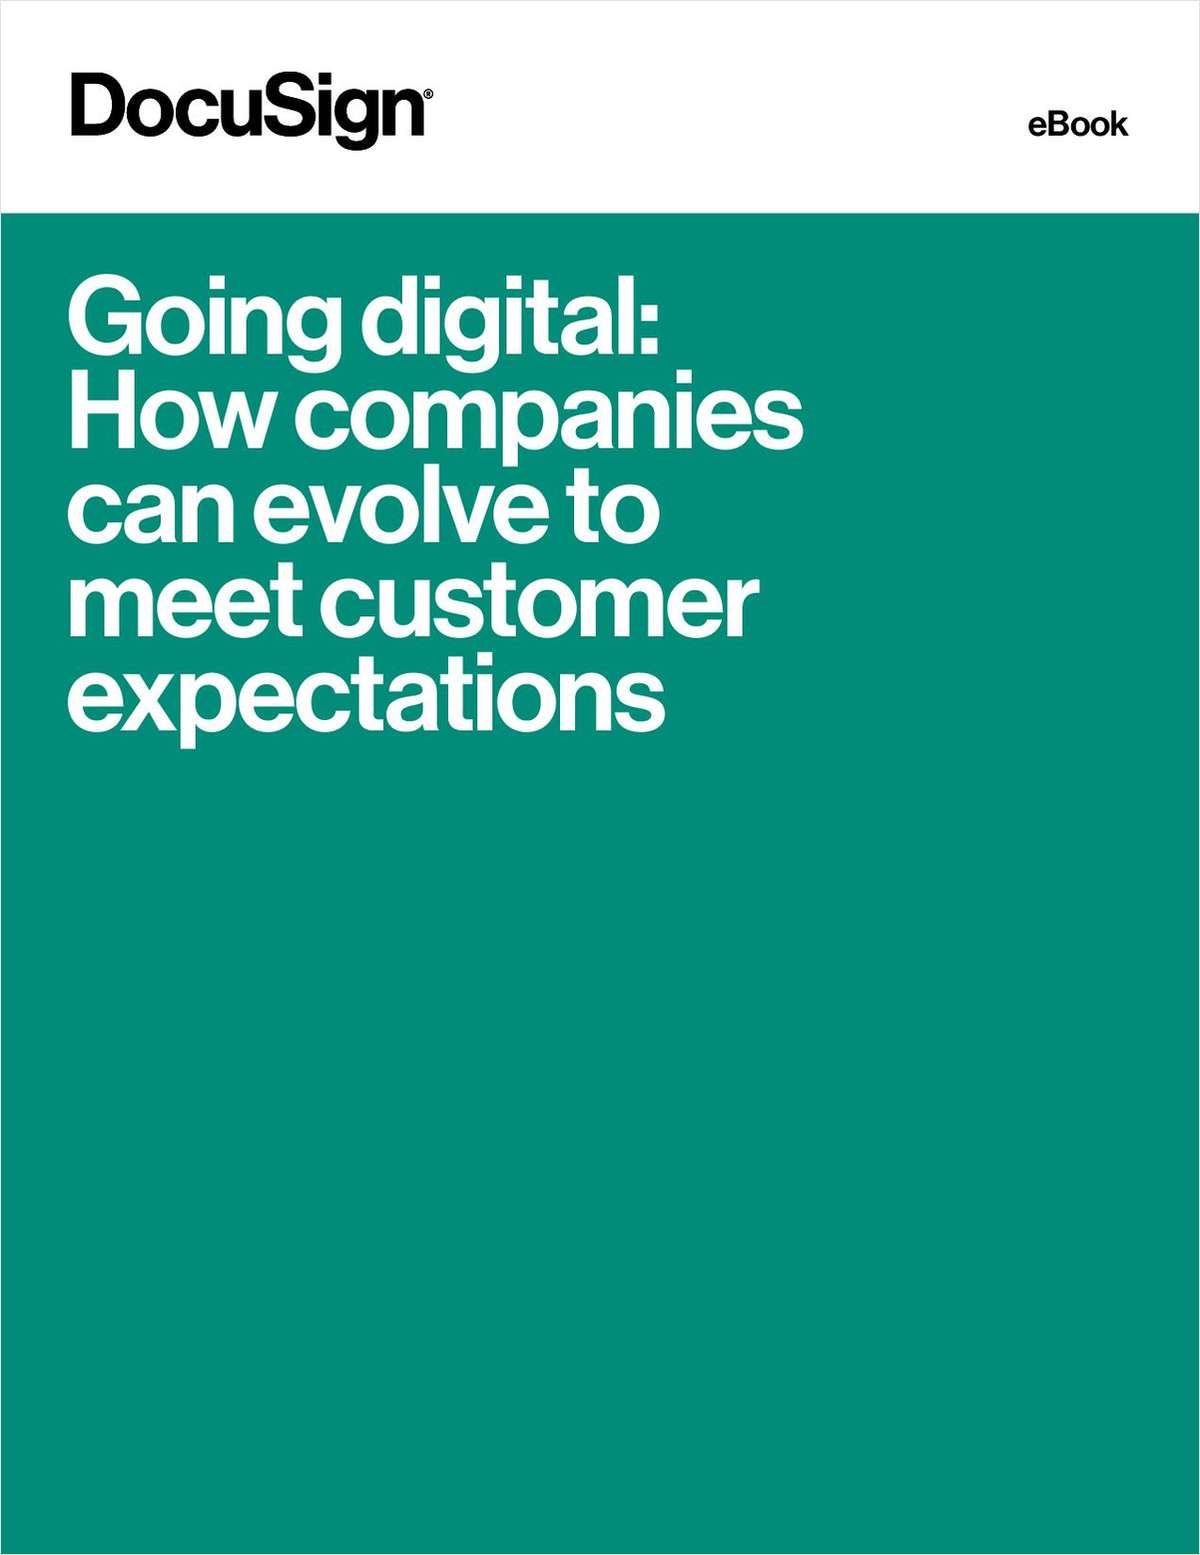 Going digital: How companies can evolve to meet customer expectations